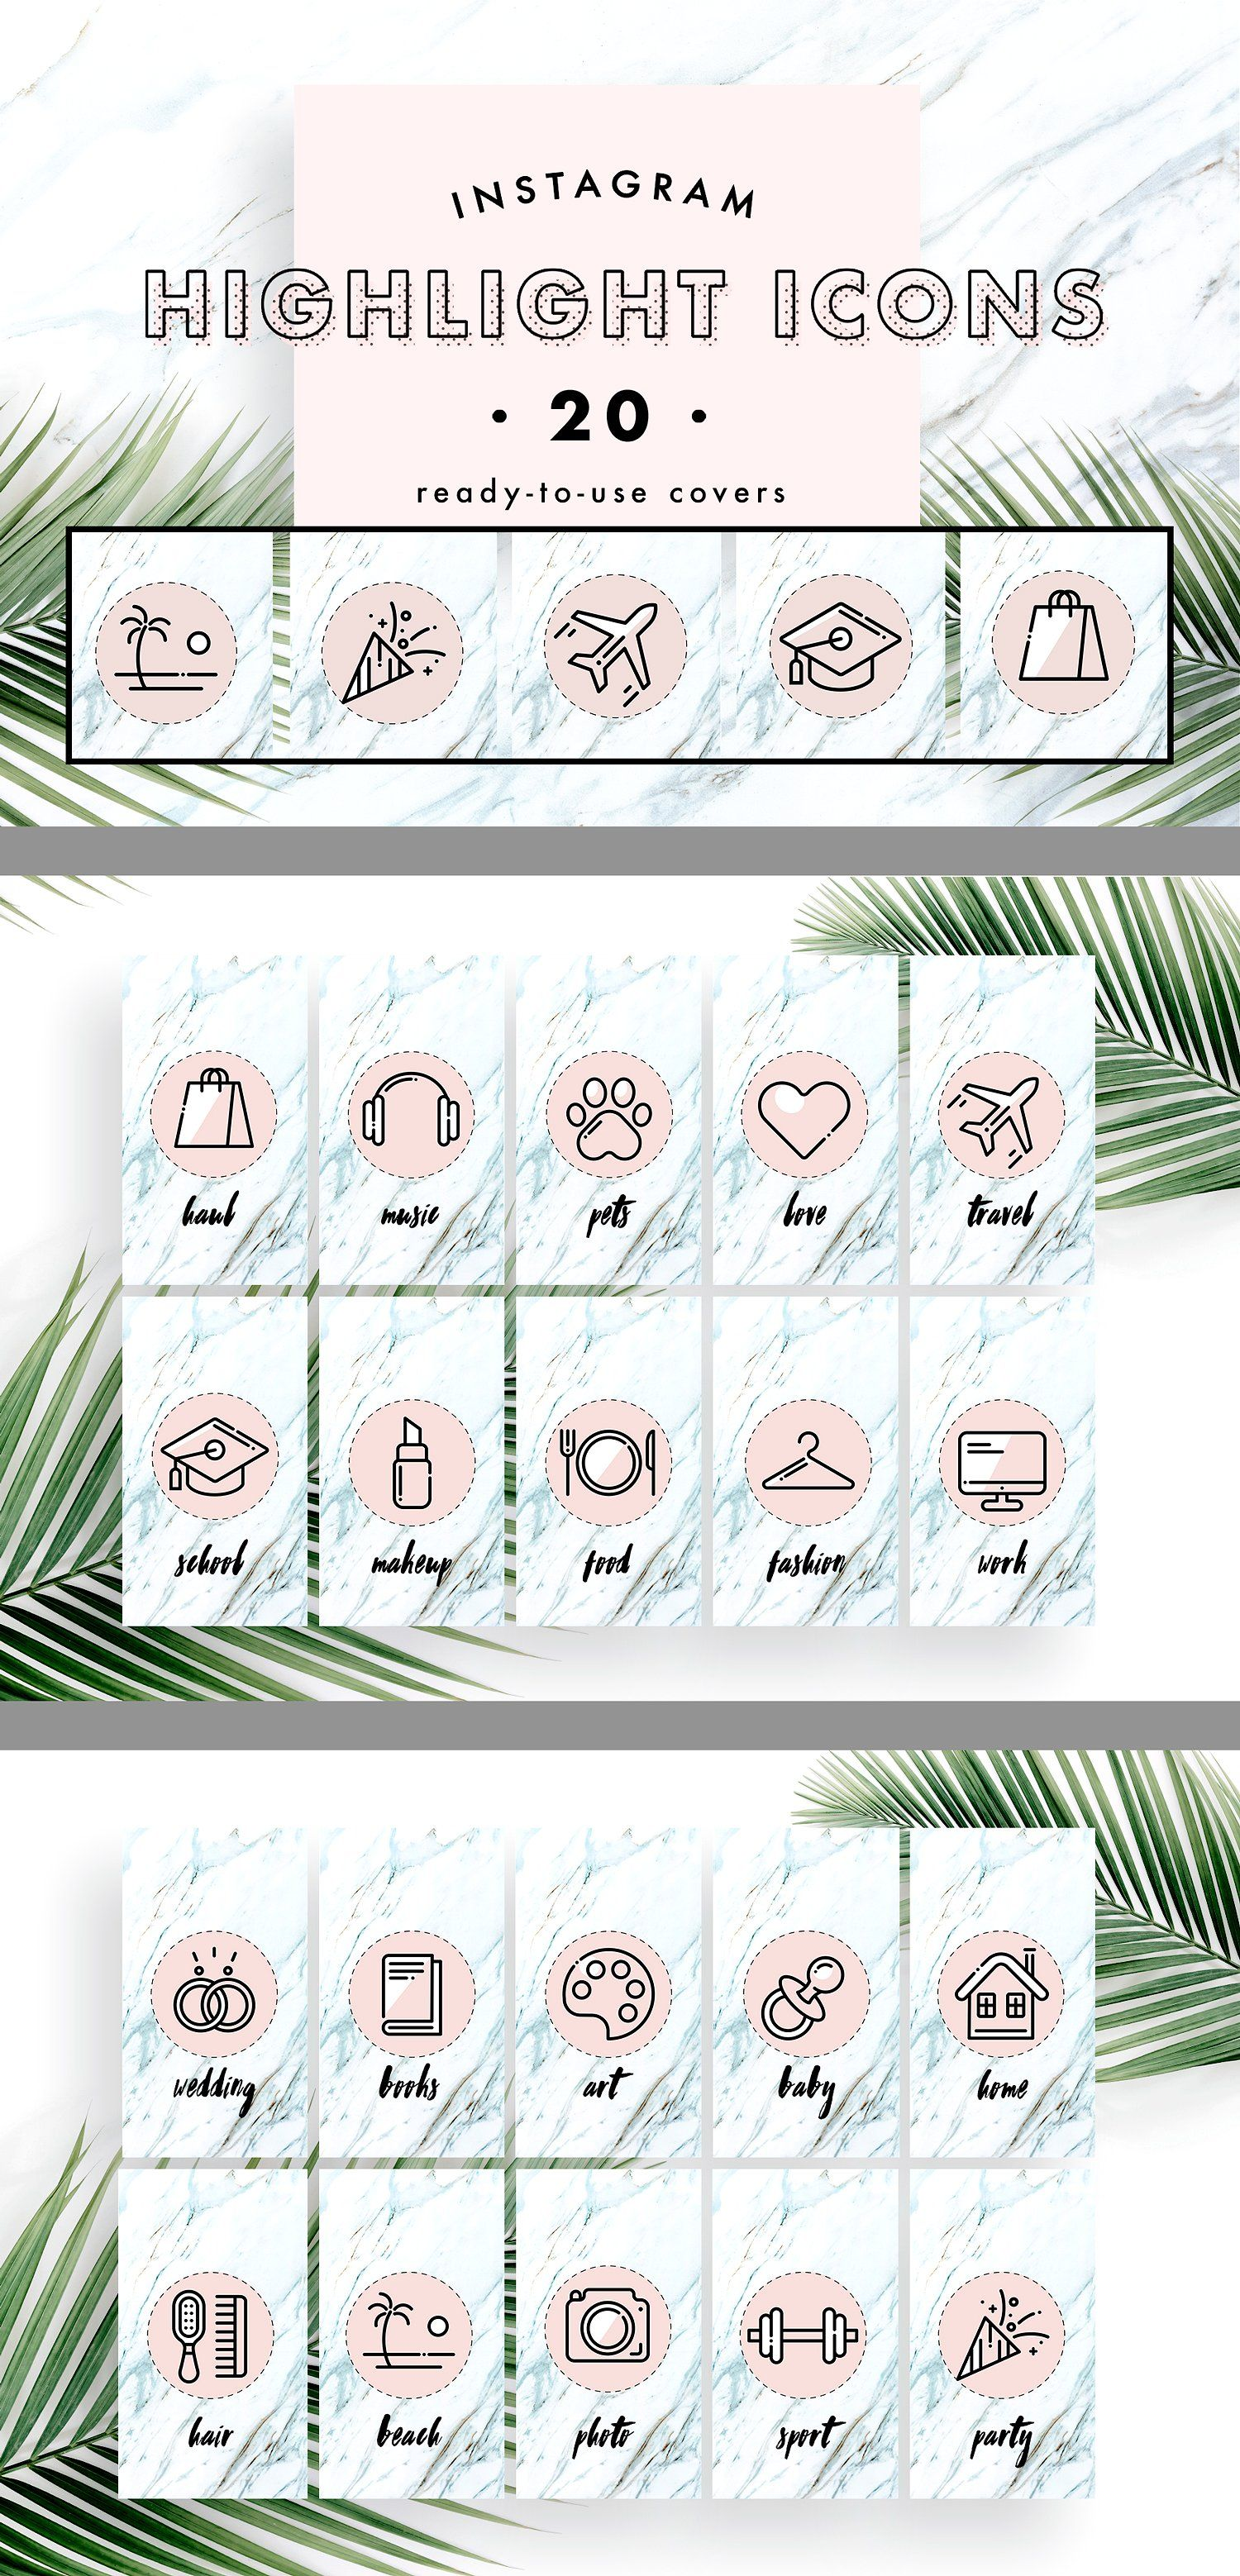 Instagram Story Highlight Covers by Marie T on @creativemarket   set of 20 for your Instagram story highlights. These templates are fully customizable and compatible with Adobe Photoshop or Adobe Illustrator. With this pack, you can upgrade your Instagram in a stylish and professional way   #instagram #icons #highlight #cover #feminine *affiliate